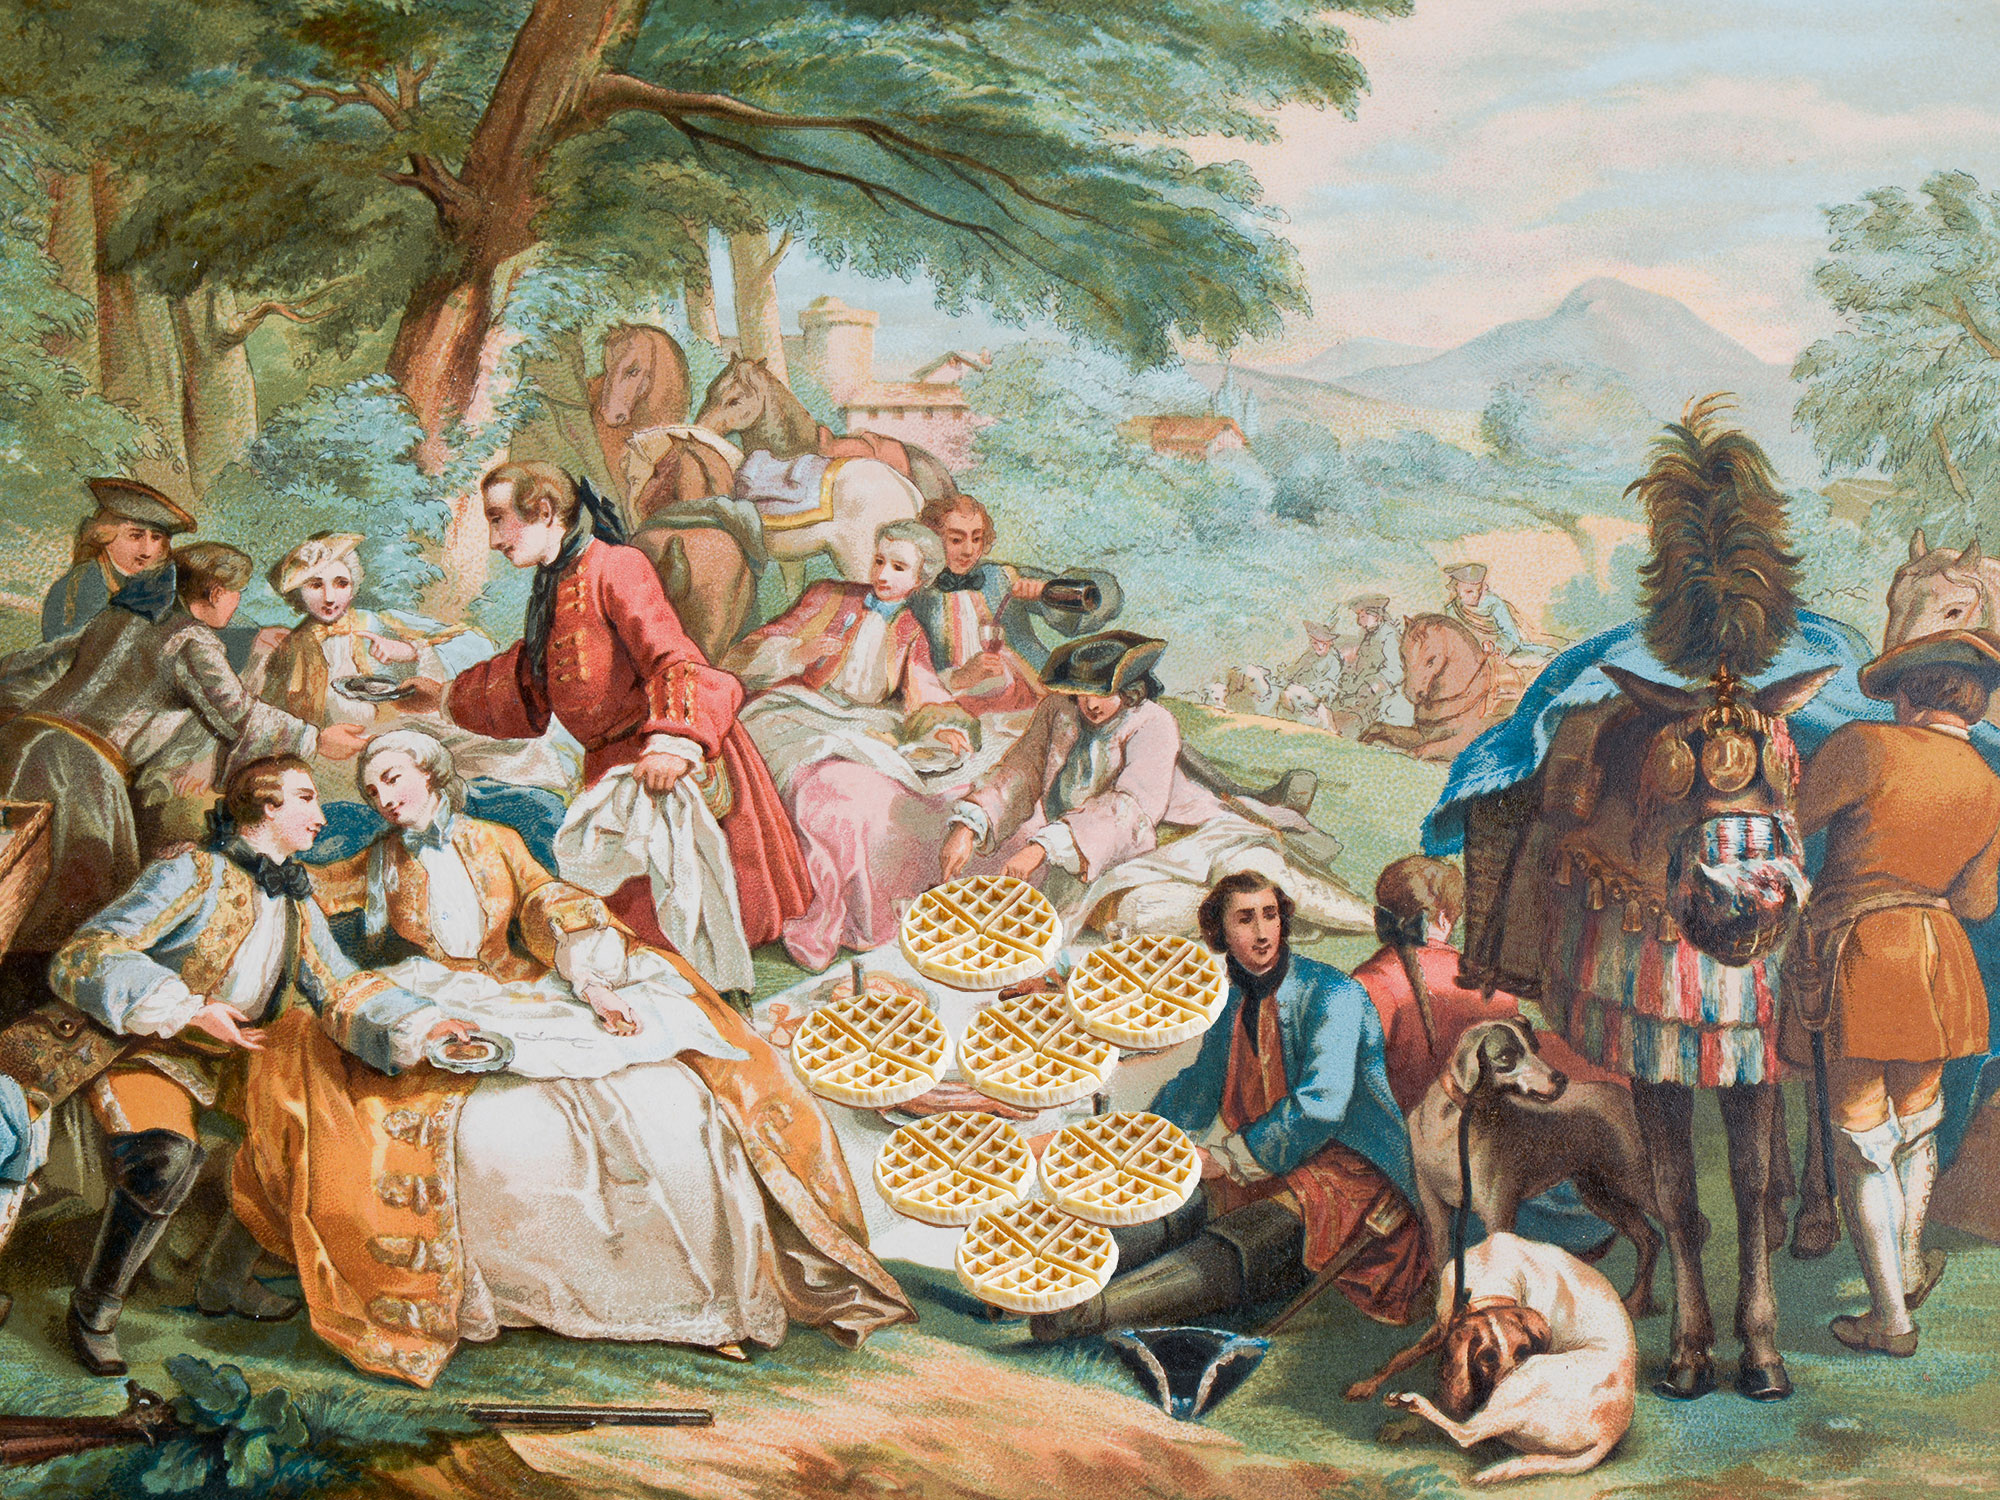 Early Americans Threw 'Waffle Frolic' Parties to Celebrate Their Love of Waffles